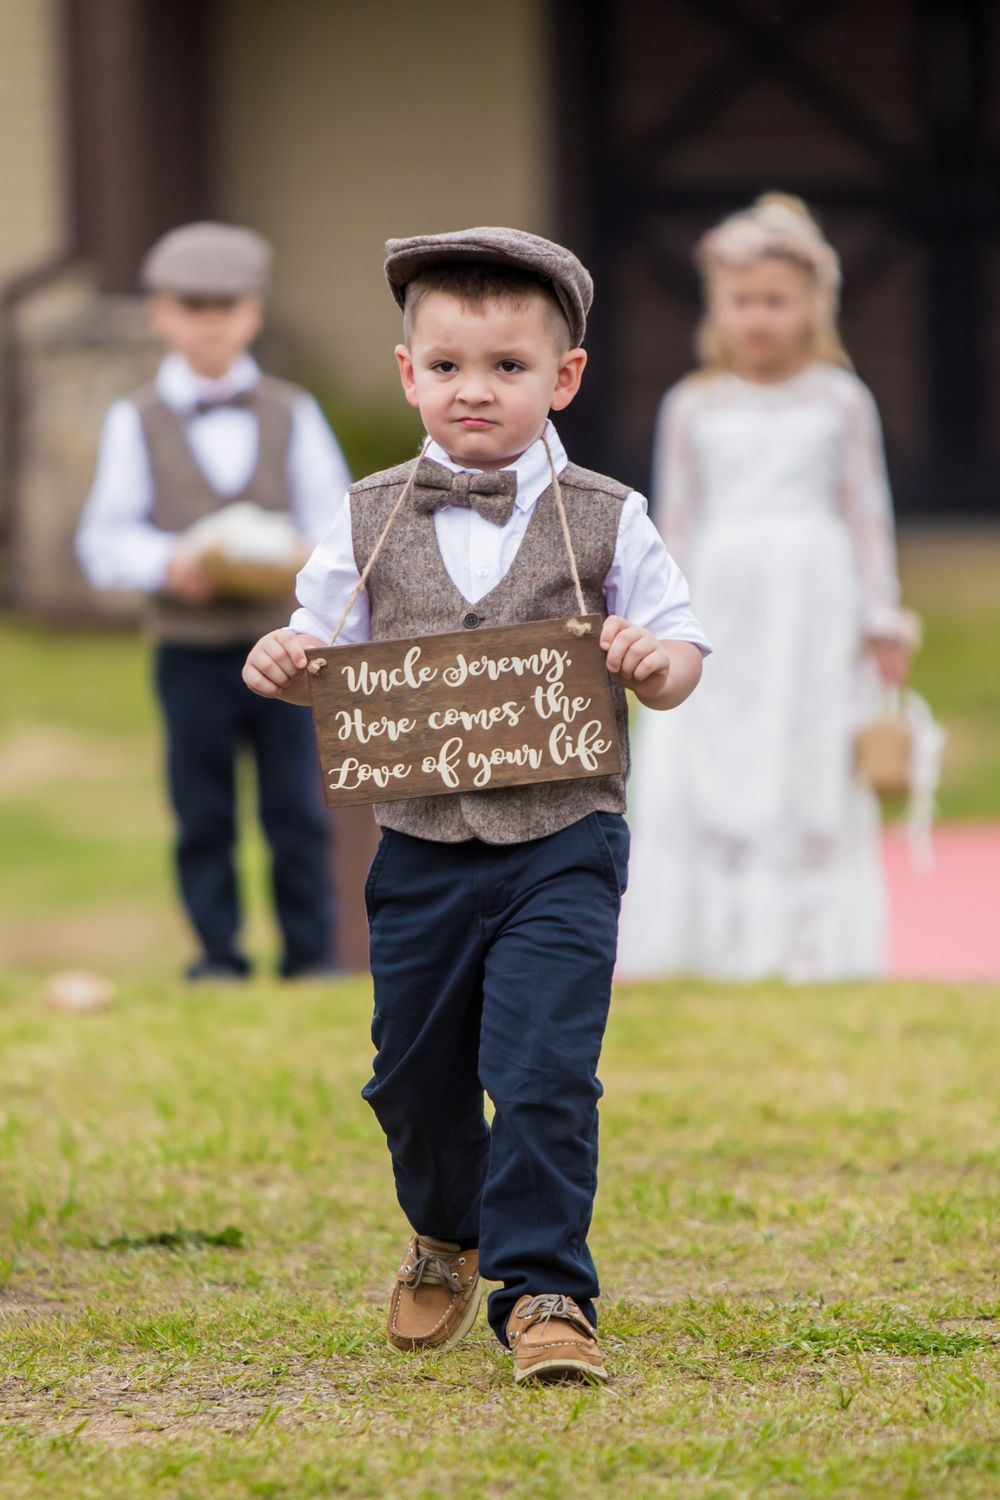 Ring bearer holds a sign during a wedding ceremony at the Farm at Ridgeway in Ridgeway, SC